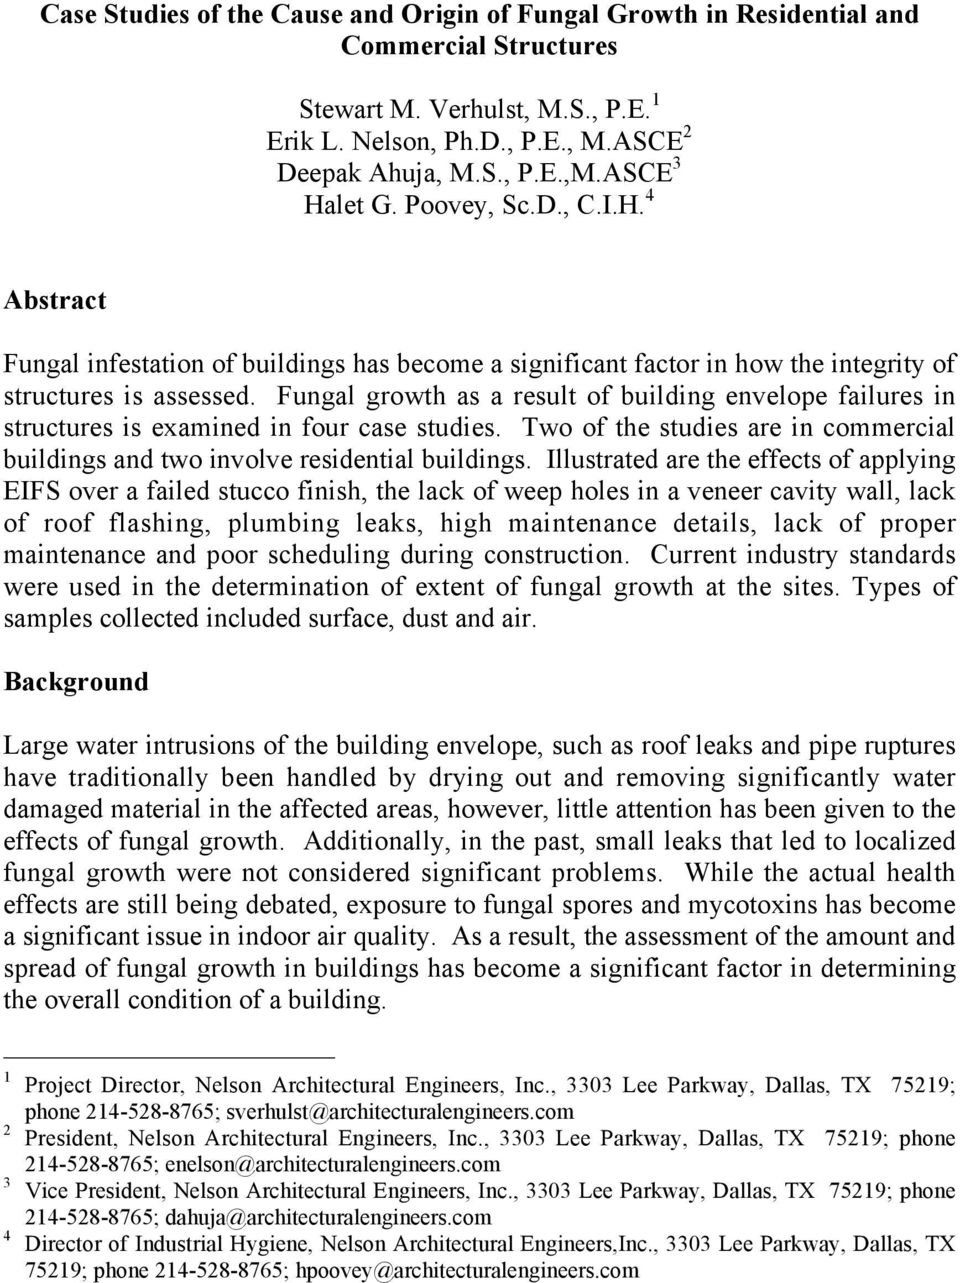 Fungal growth as a result of building envelope failures in structures is examined in four case studies. Two of the studies are in commercial buildings and two involve residential buildings.